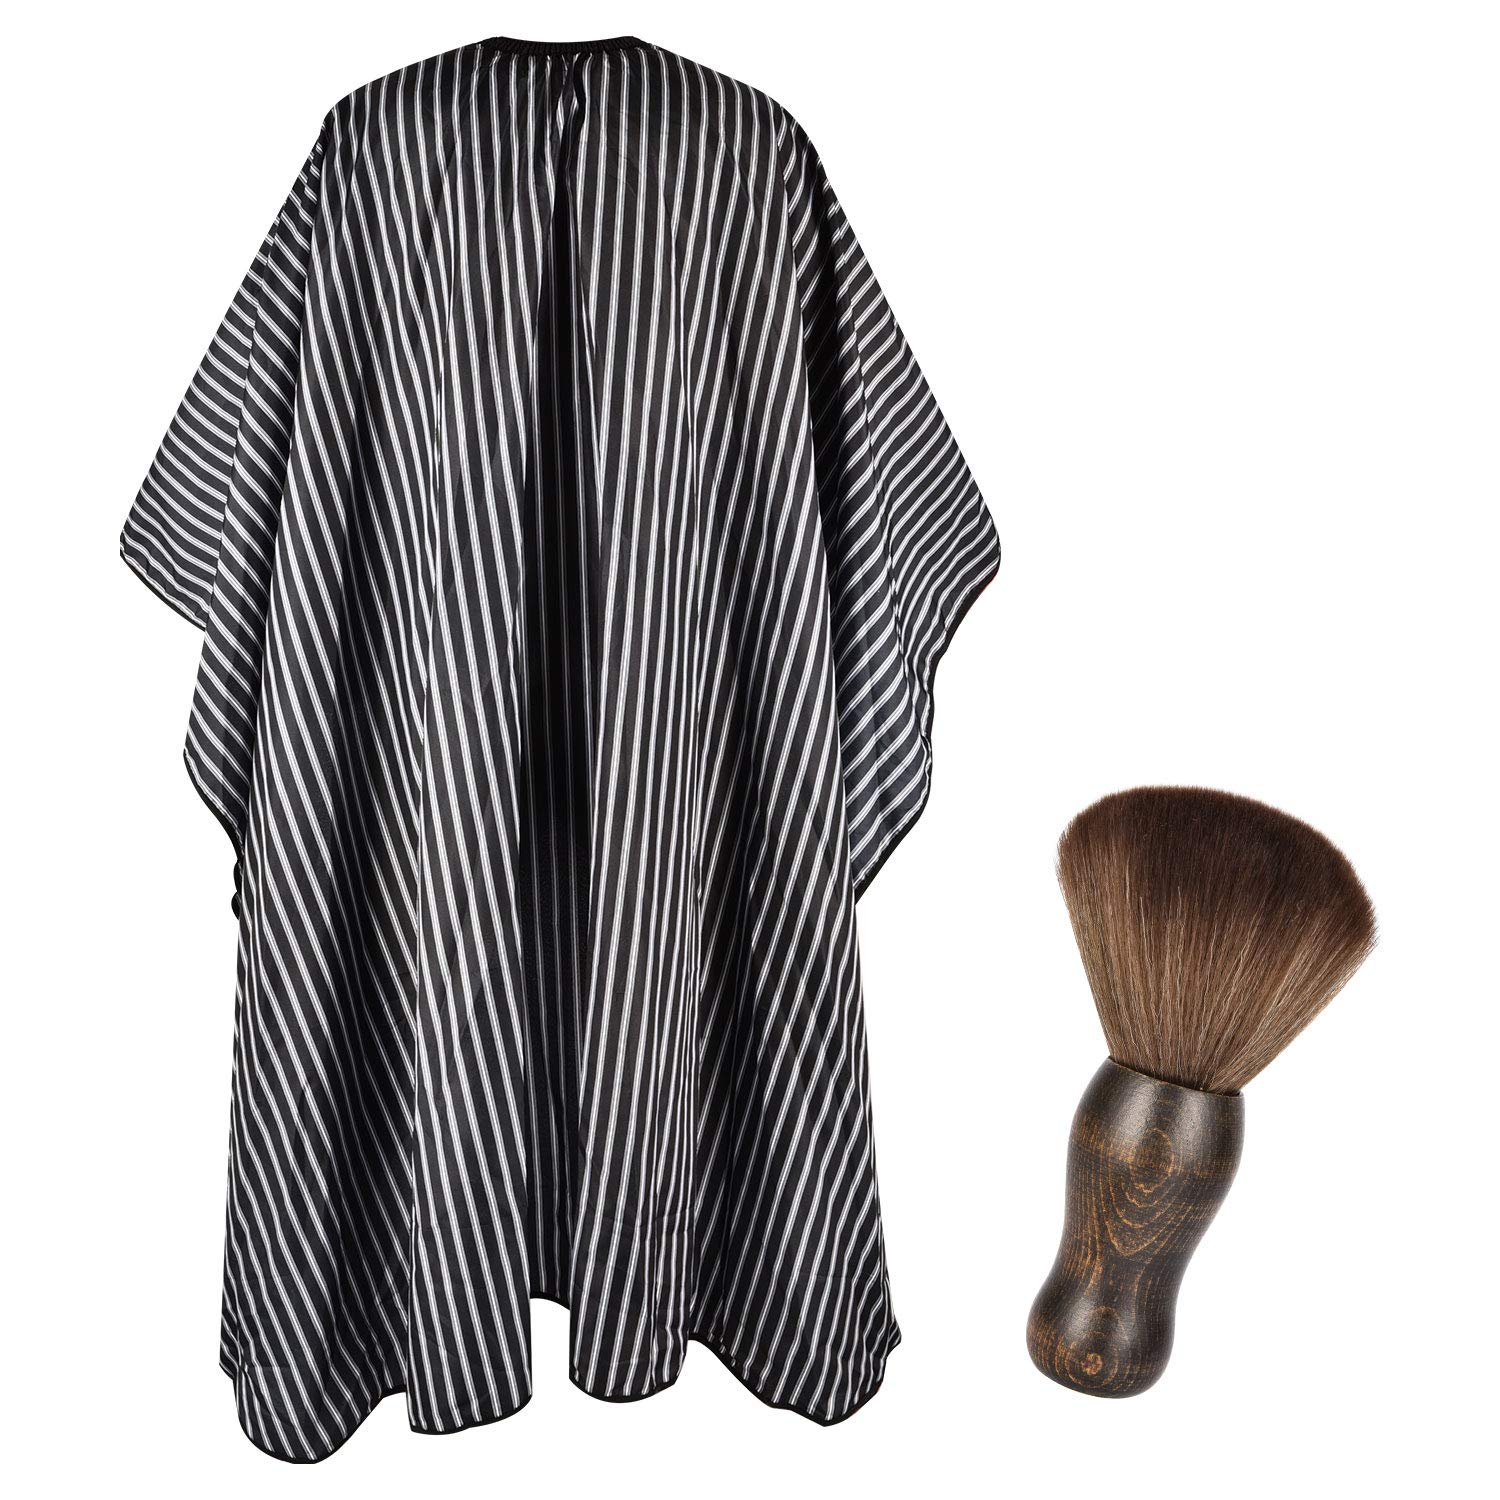 FaHaner Haircut Cape 57 65 inch and Neck Duster Set Barber Hairbrush and Salon Hairdresser Cape with Adjustable Snap Closure Extra Long Cape 145 165cm Perfect for Hairstylists and Barbers by FaHaner